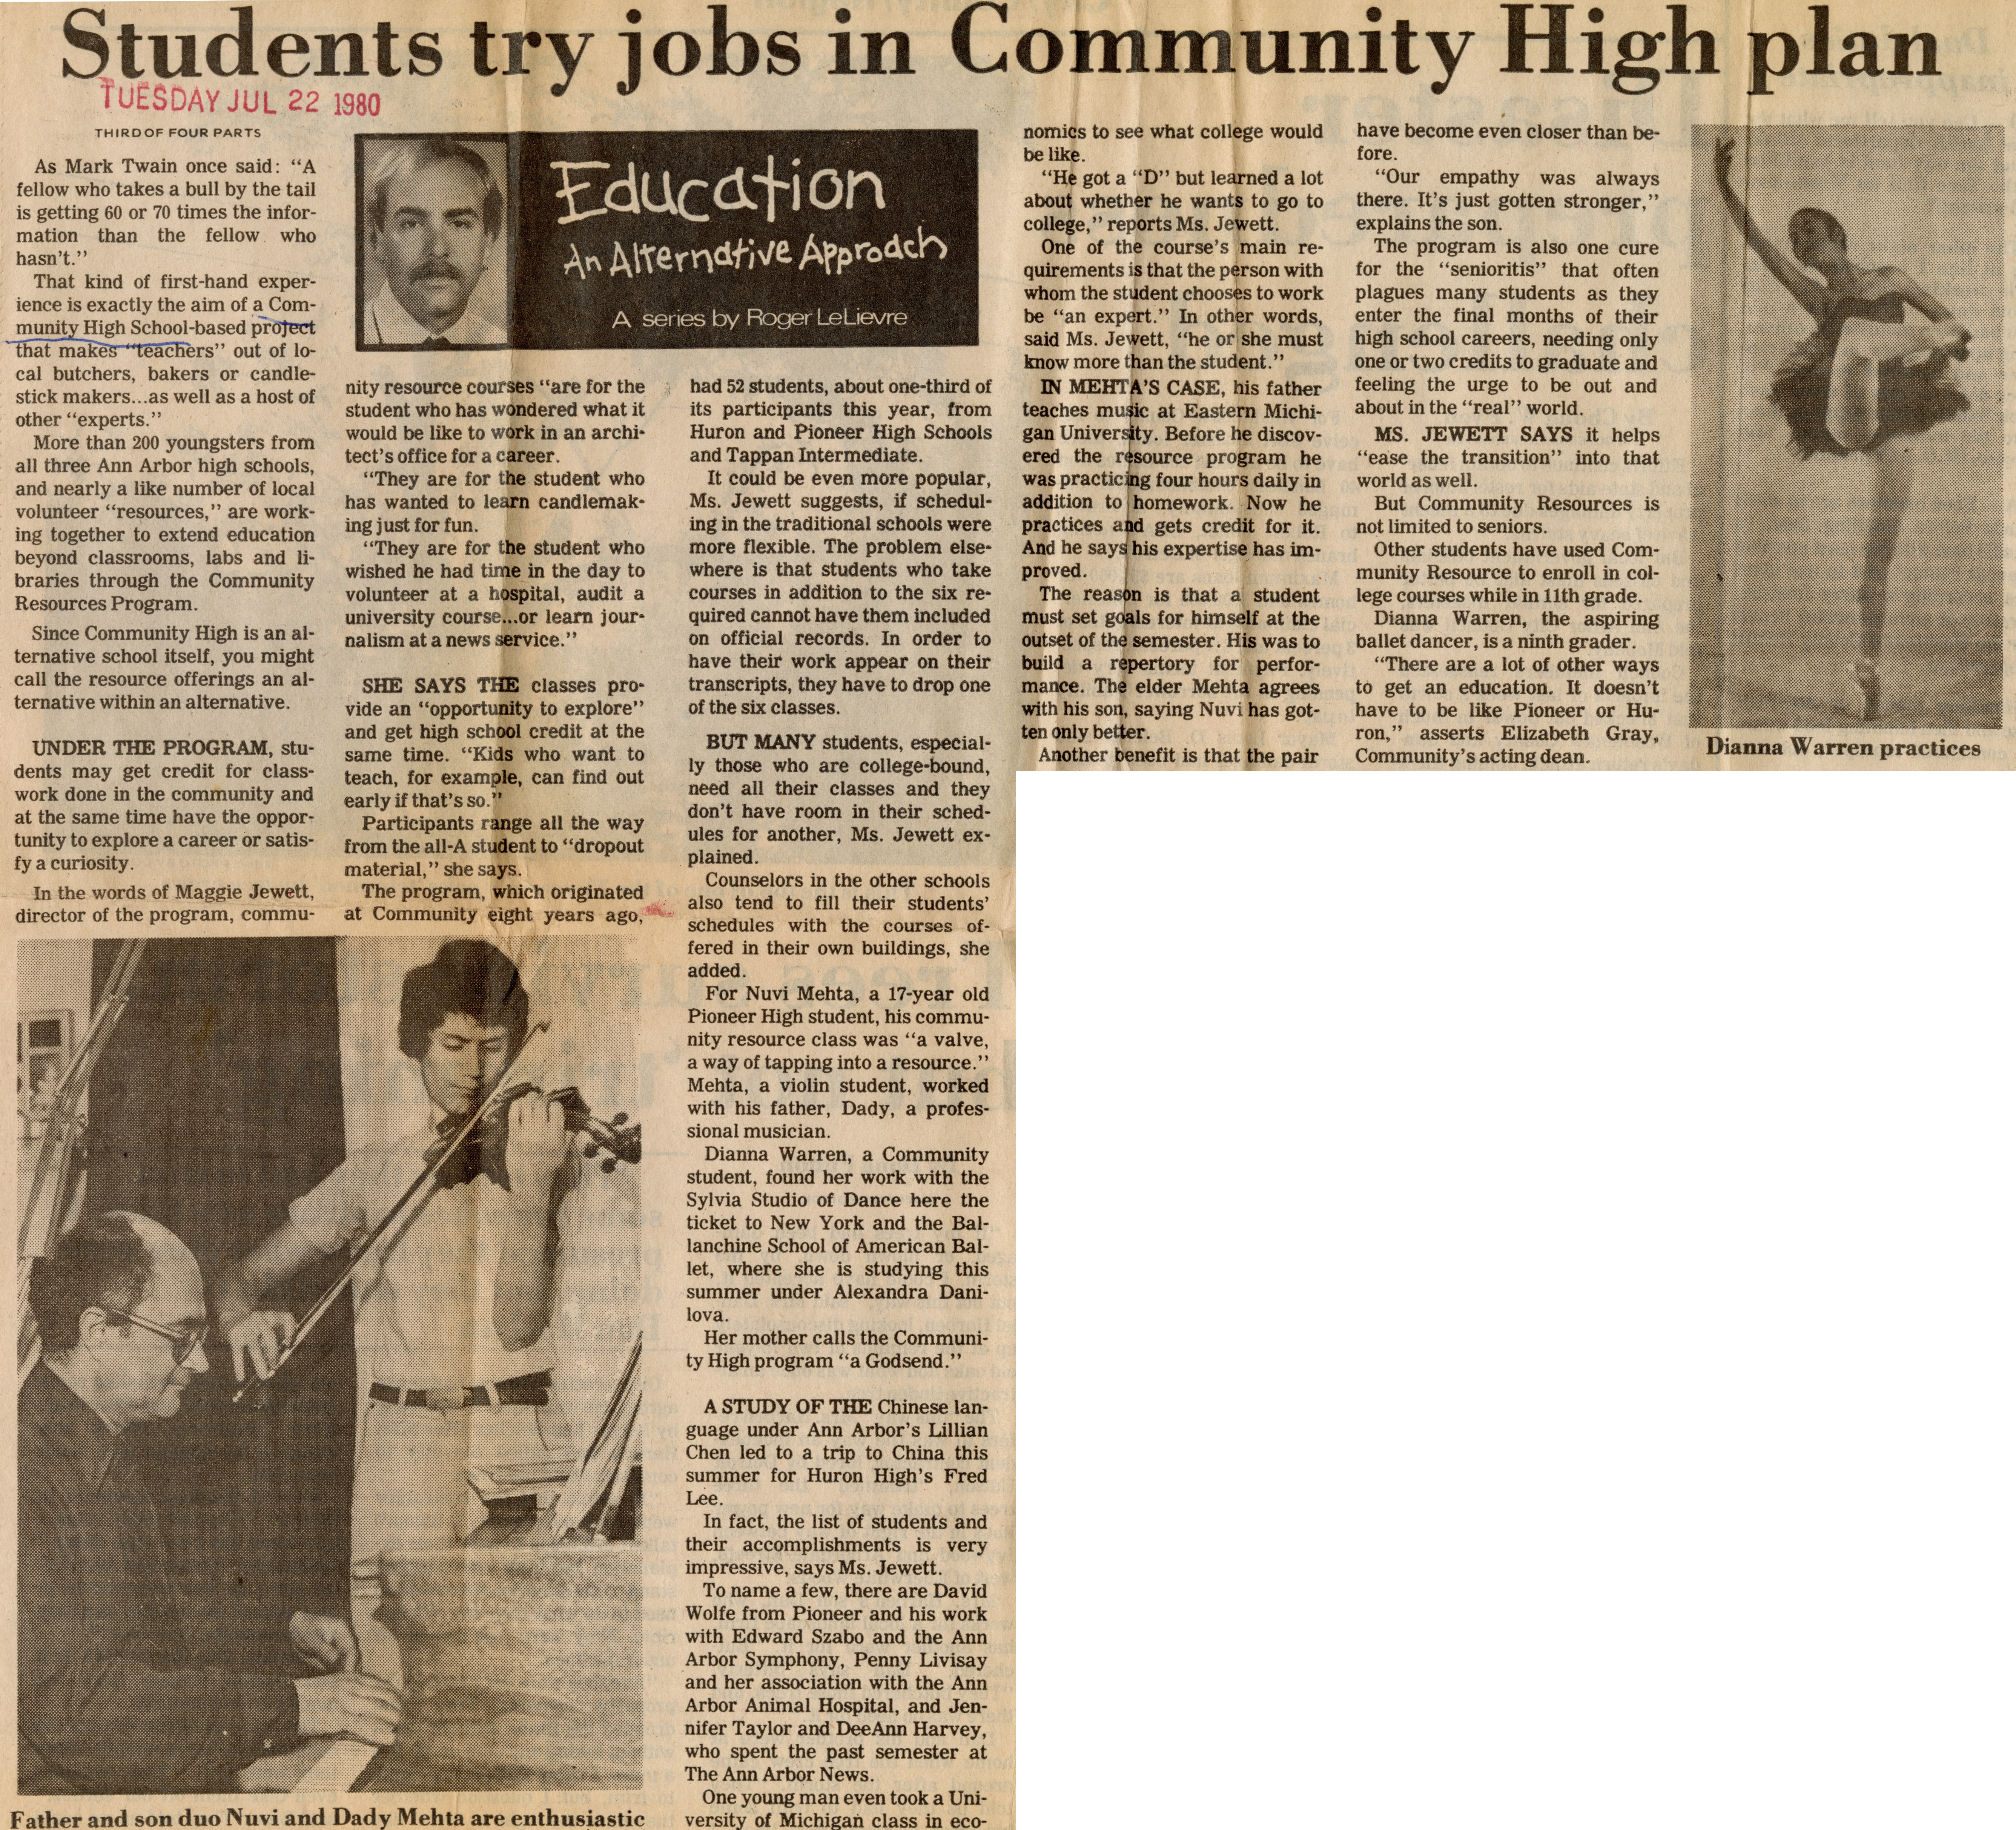 Students Try Jobs In Community High Plan image